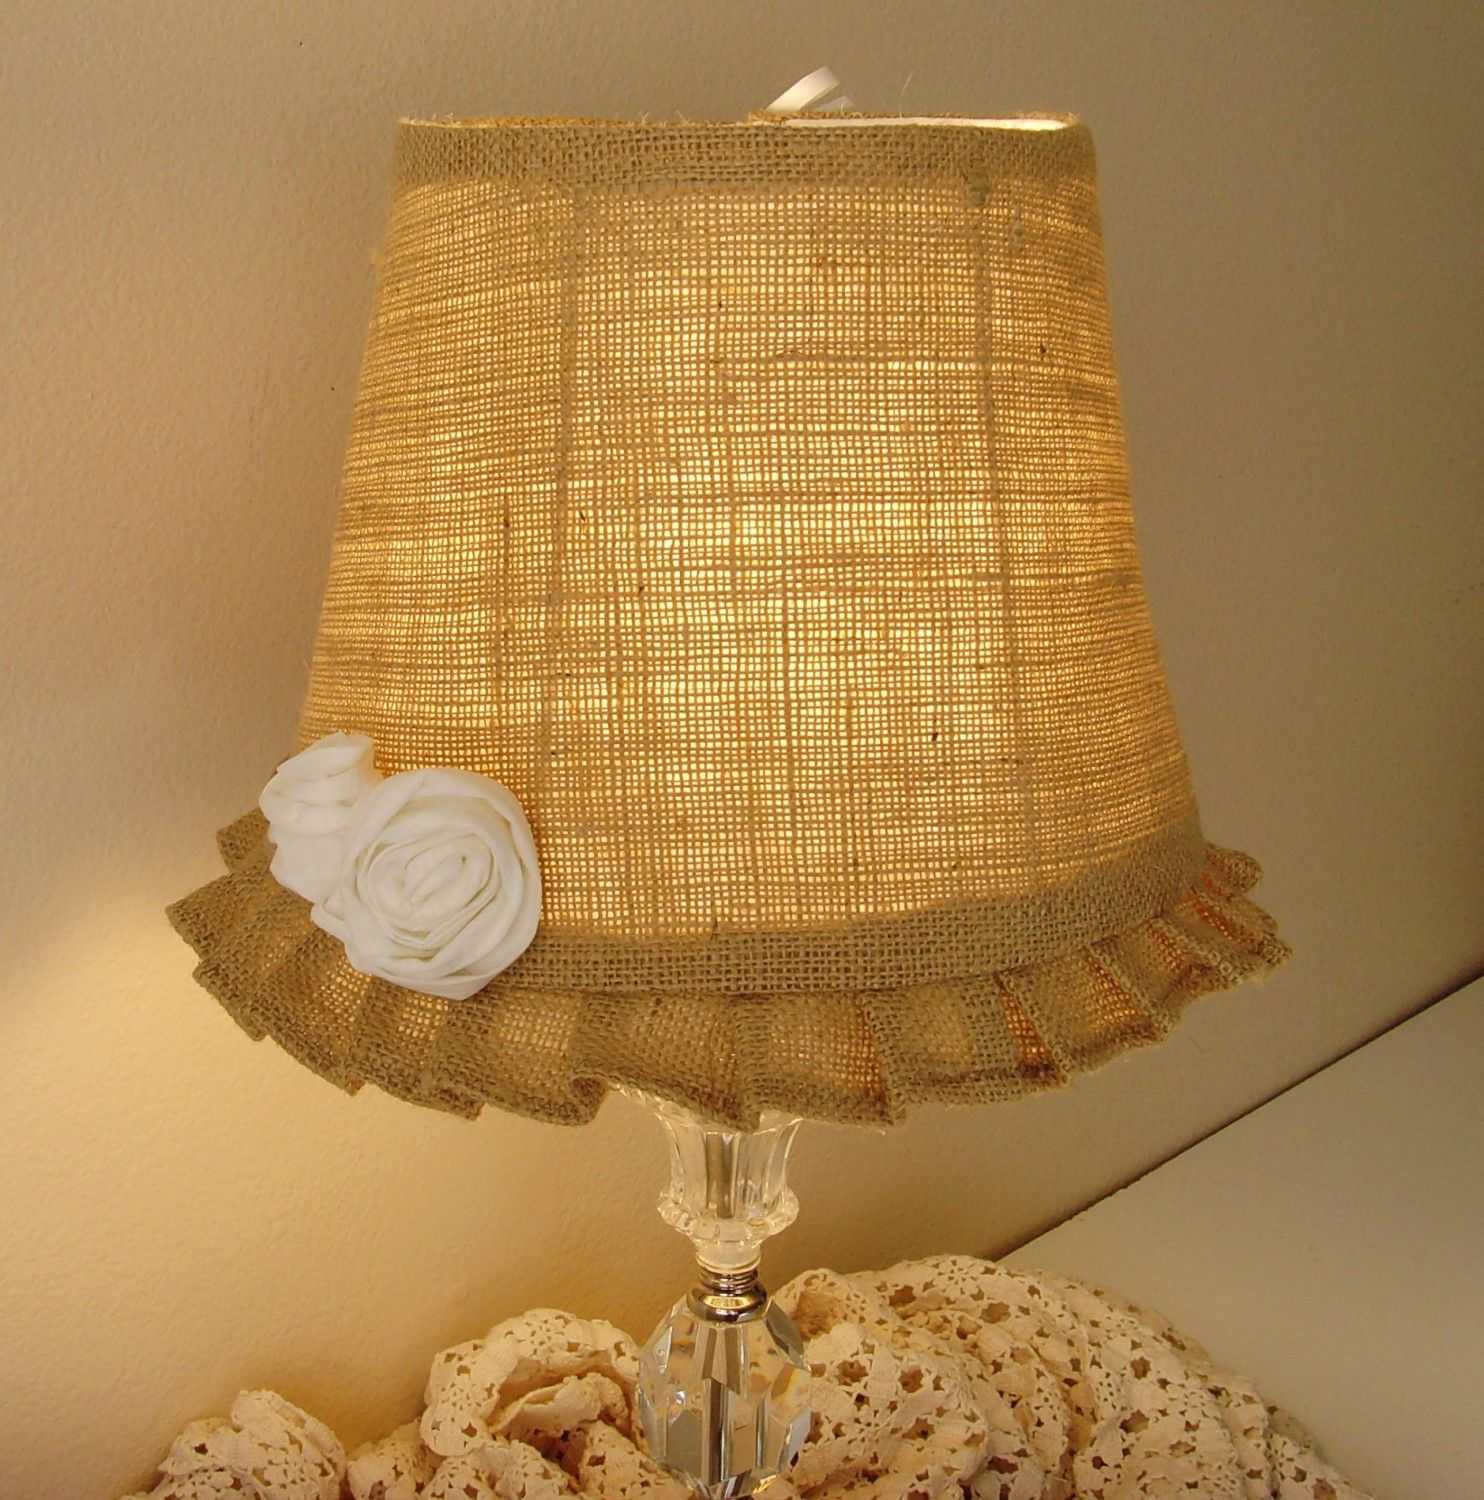 Burlap lamp shade crafts i would love to do pinterest for Burlap lights